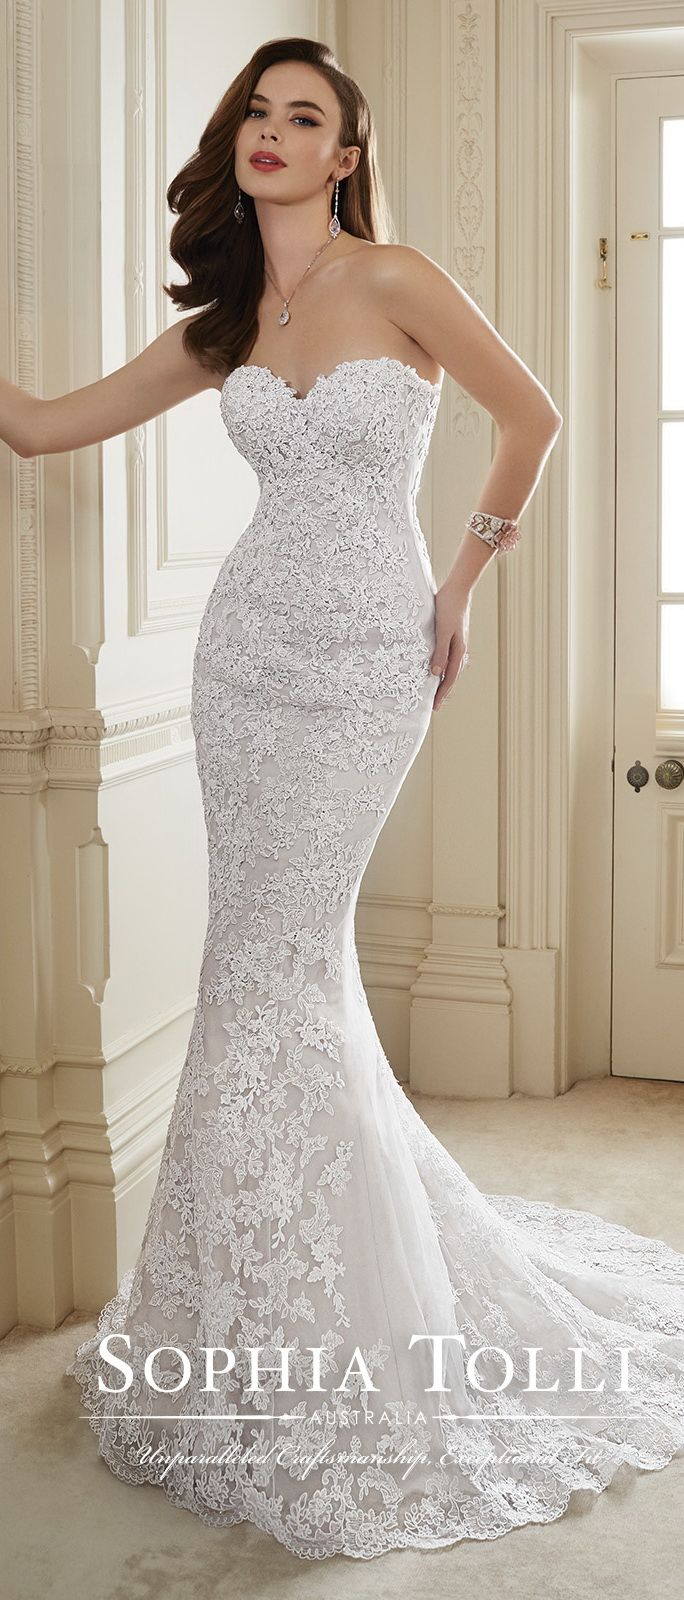 Sophia Tolli Wedding Dresses Collection Spring 2016 | http://www.tulleandchantilly.com/blog/sophia-tolli-wedding-dresses-collection-spring-2016/